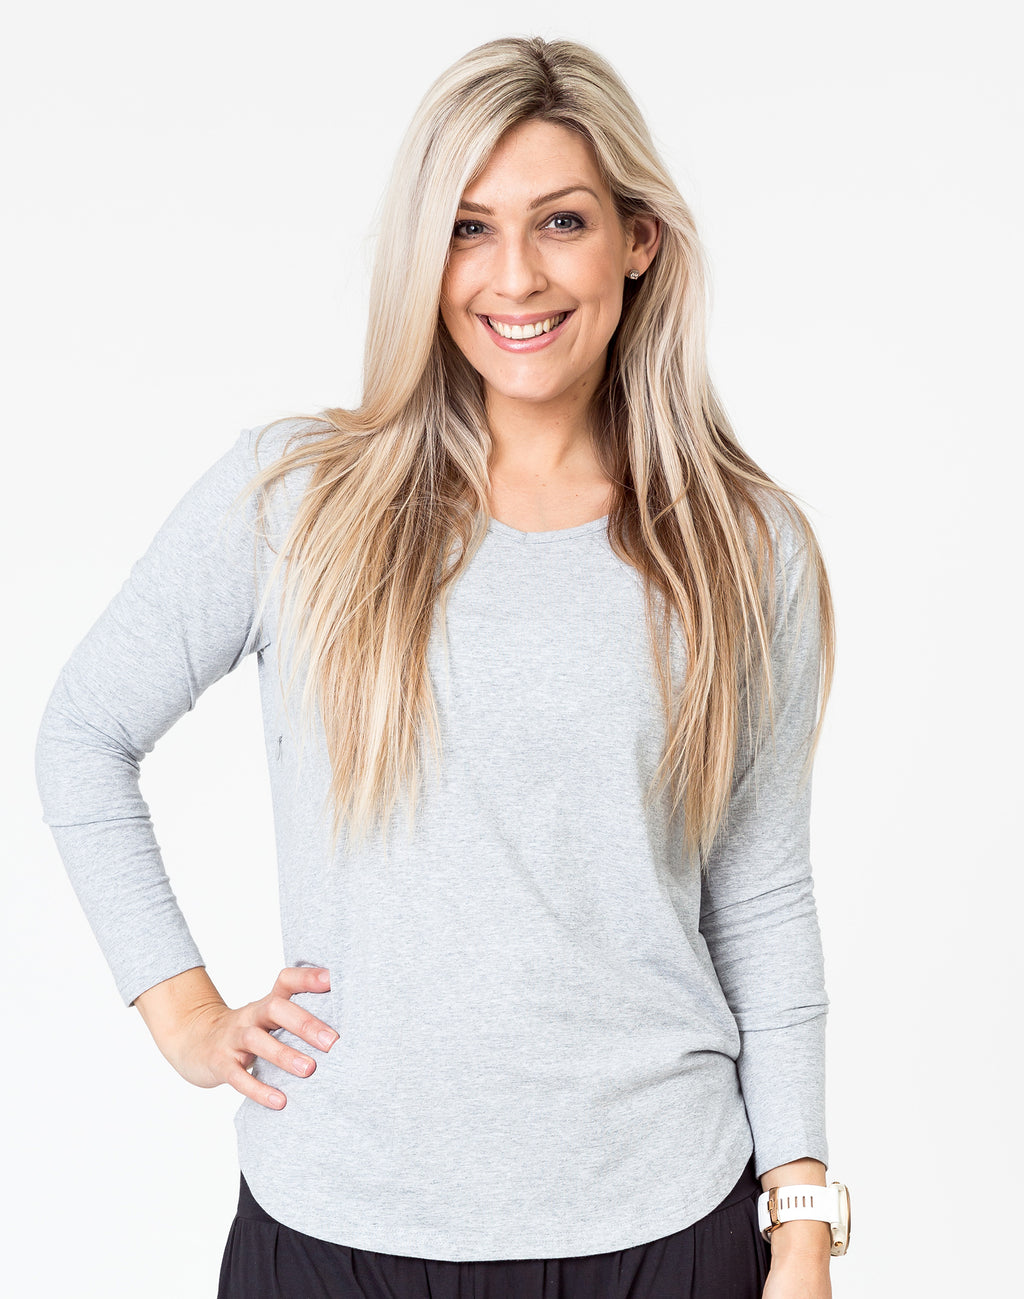 active mom wearing a gray maternity top with long sleeves and invisible zips for breastfeeding